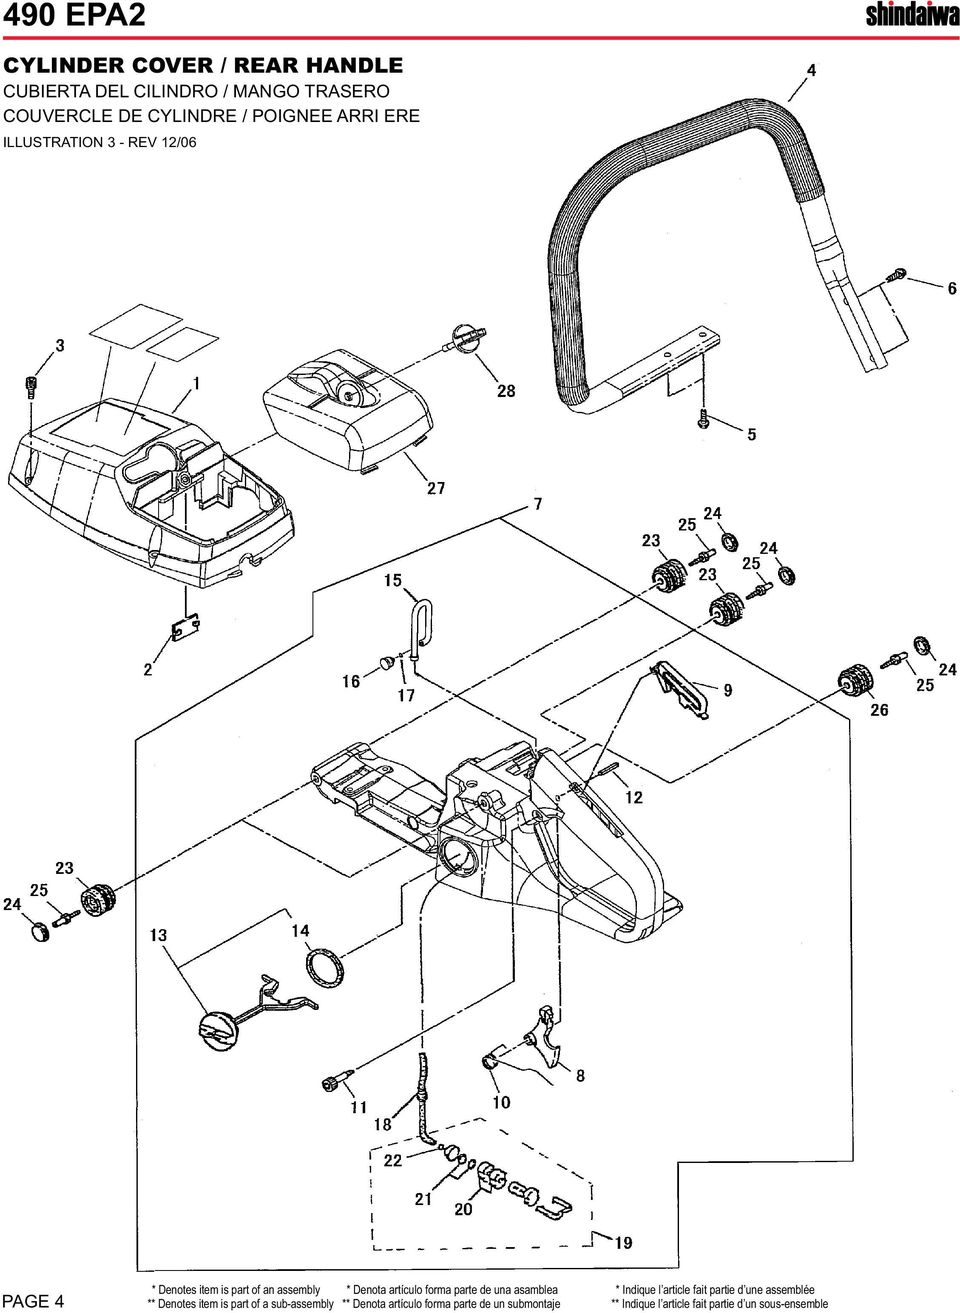 PAGE 4 ** Denotes item is part of a sub-assembly ** Denota artículo